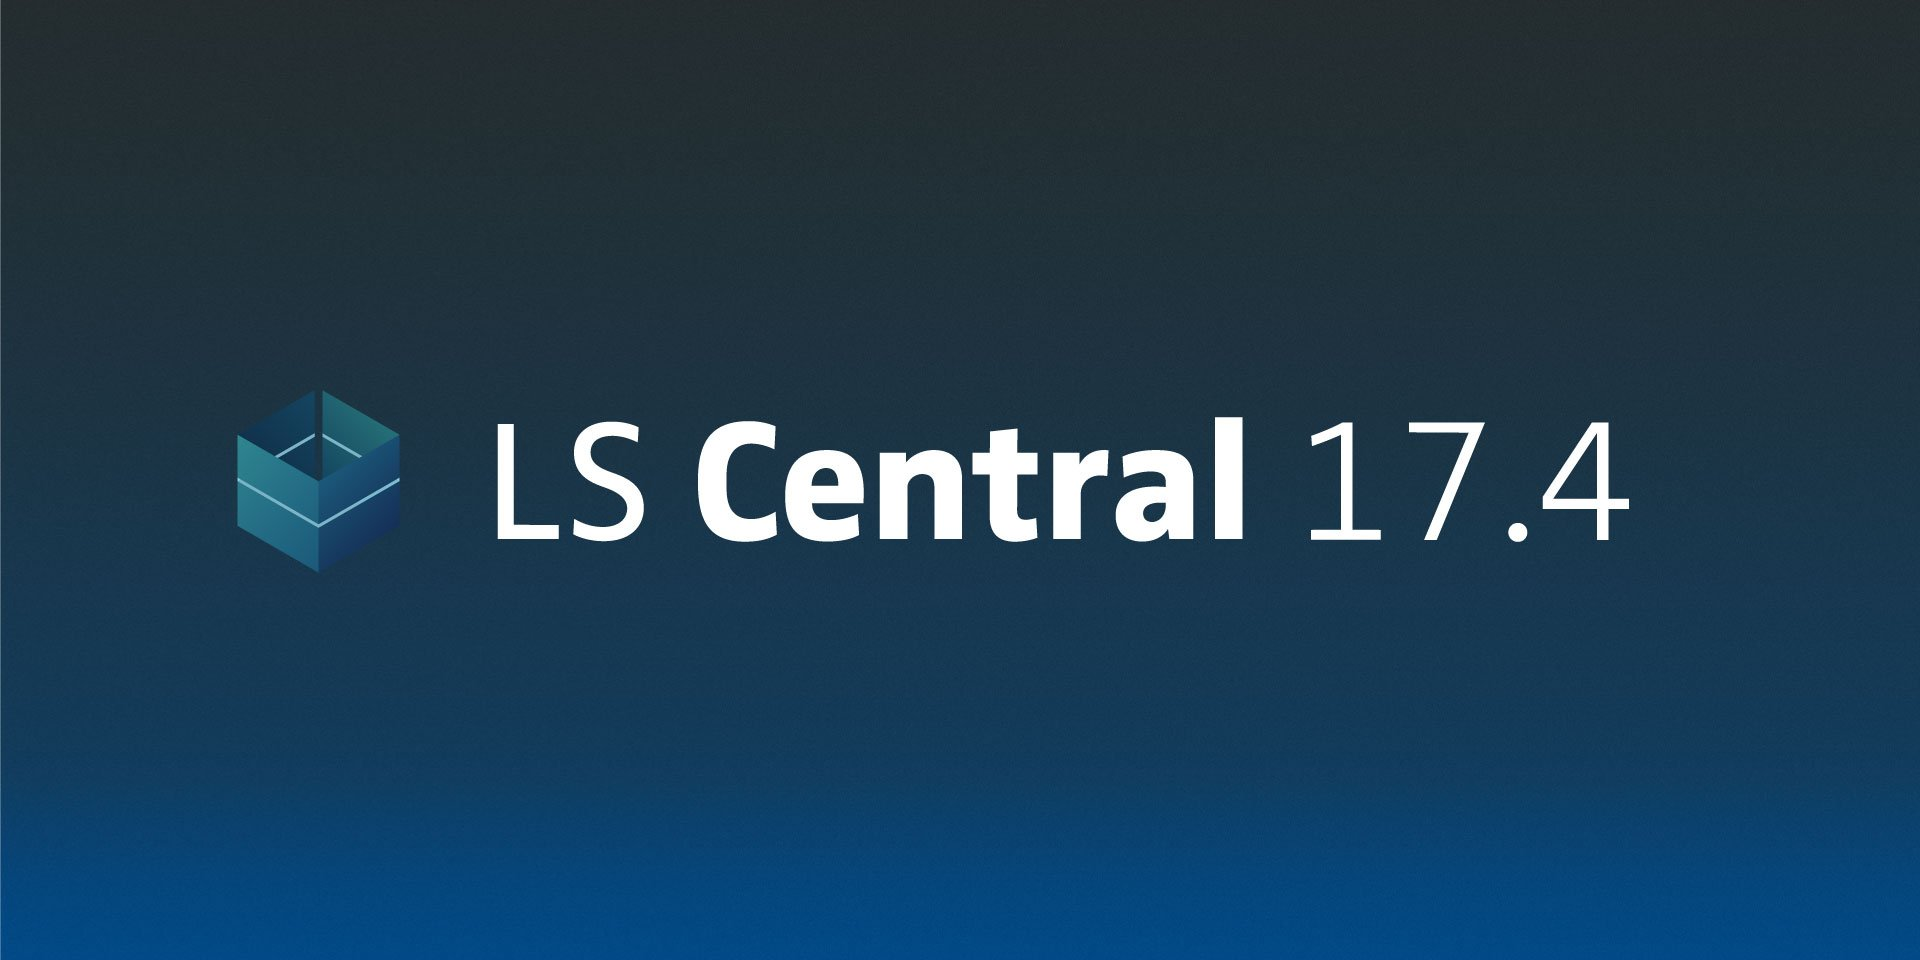 LS Central 17.4 has been released